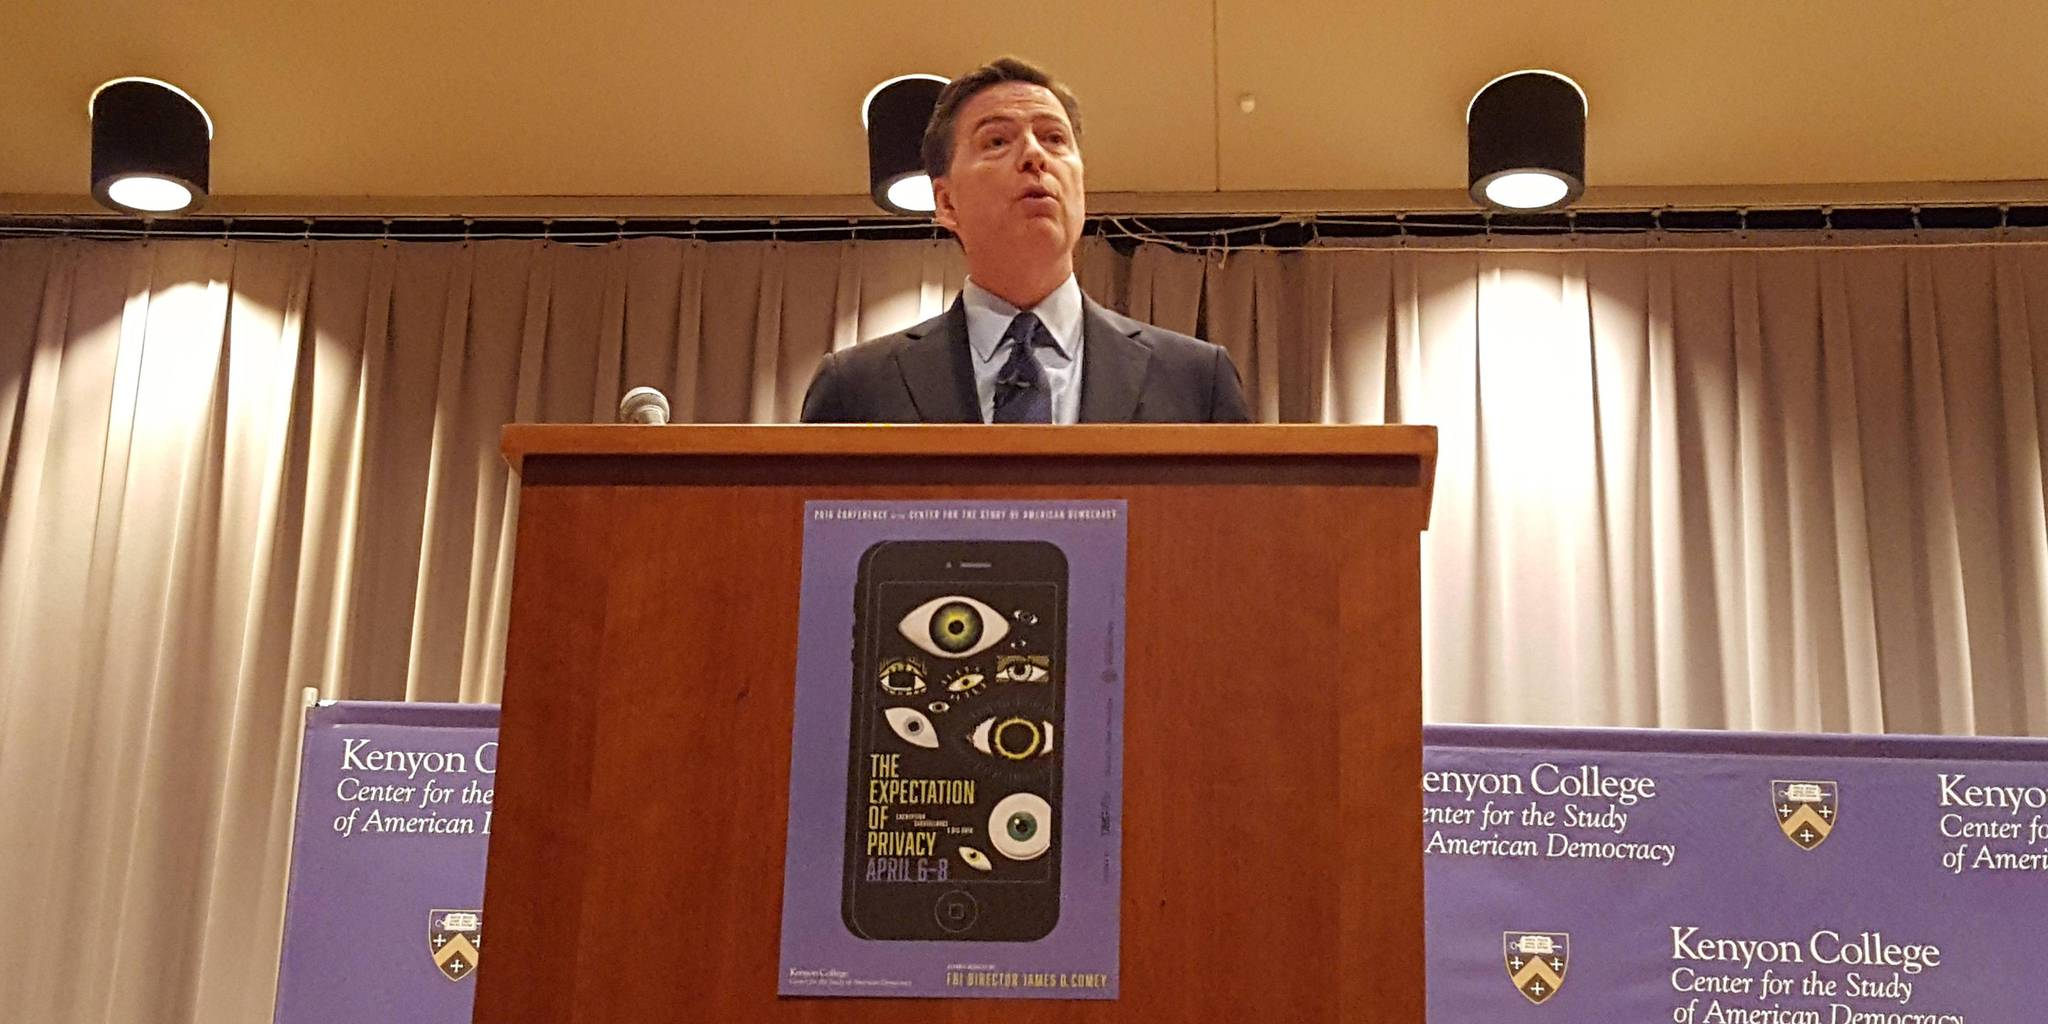 James Comey Kenyon Conference